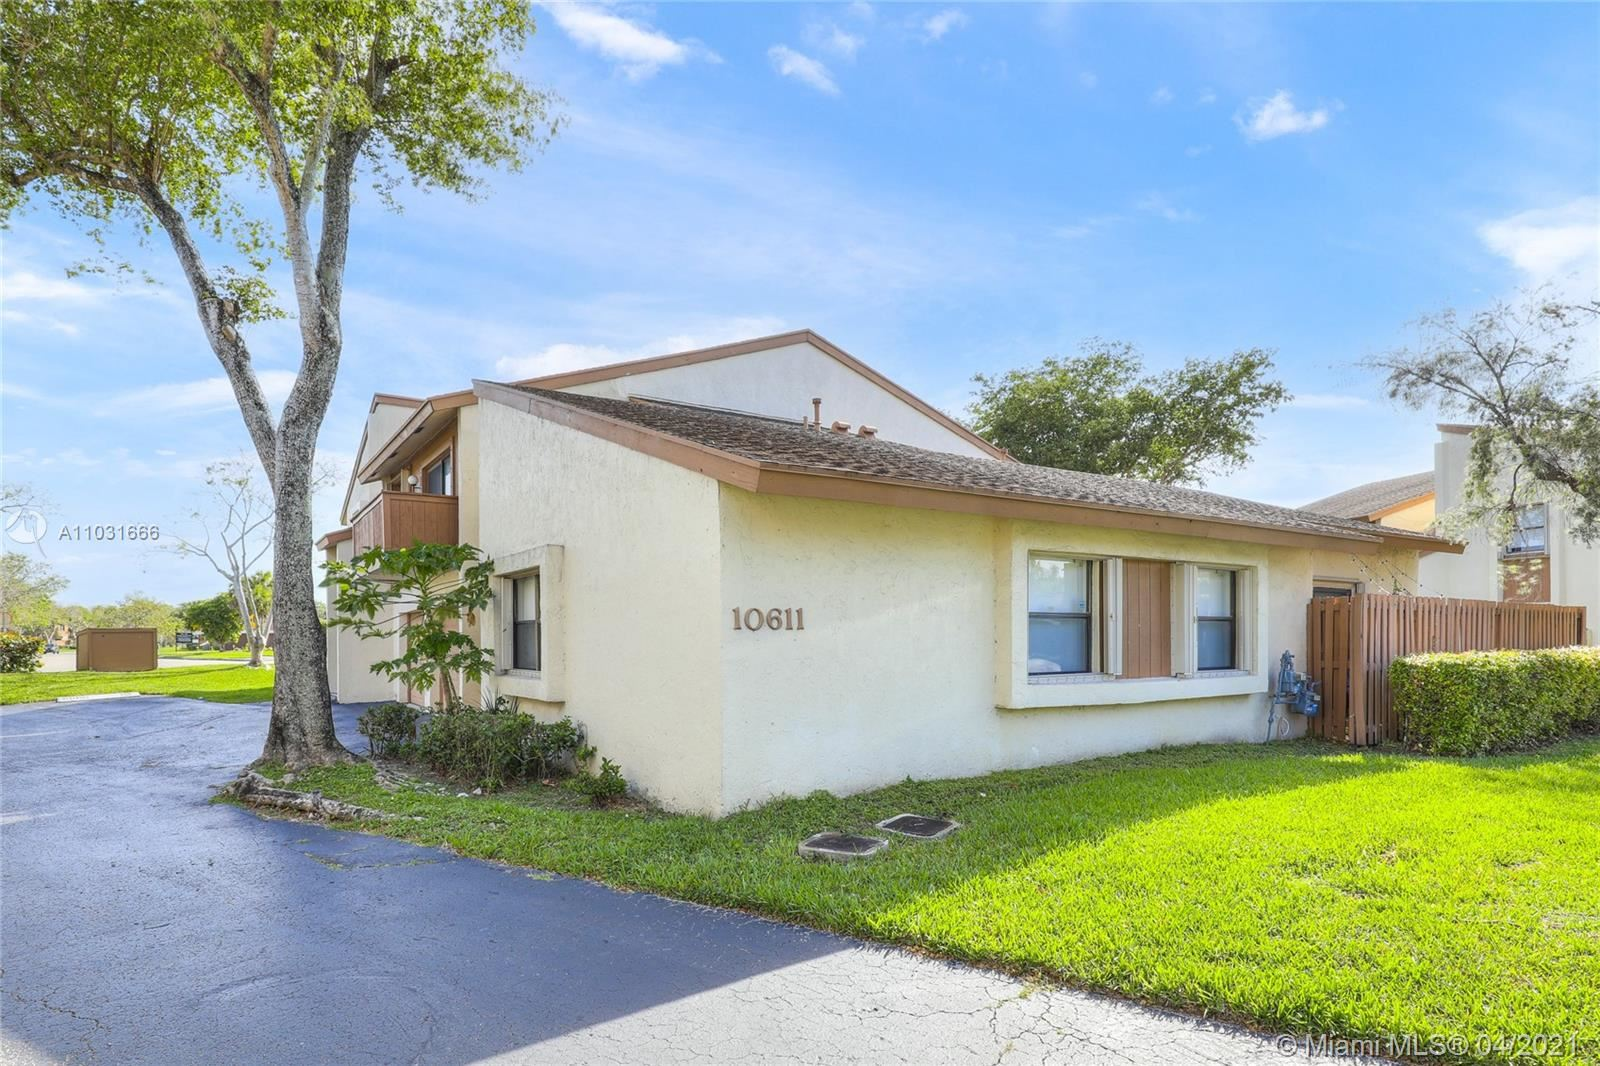 10611 SW 113th Pl #93D, Miami, FL 33176 - #: A11031666